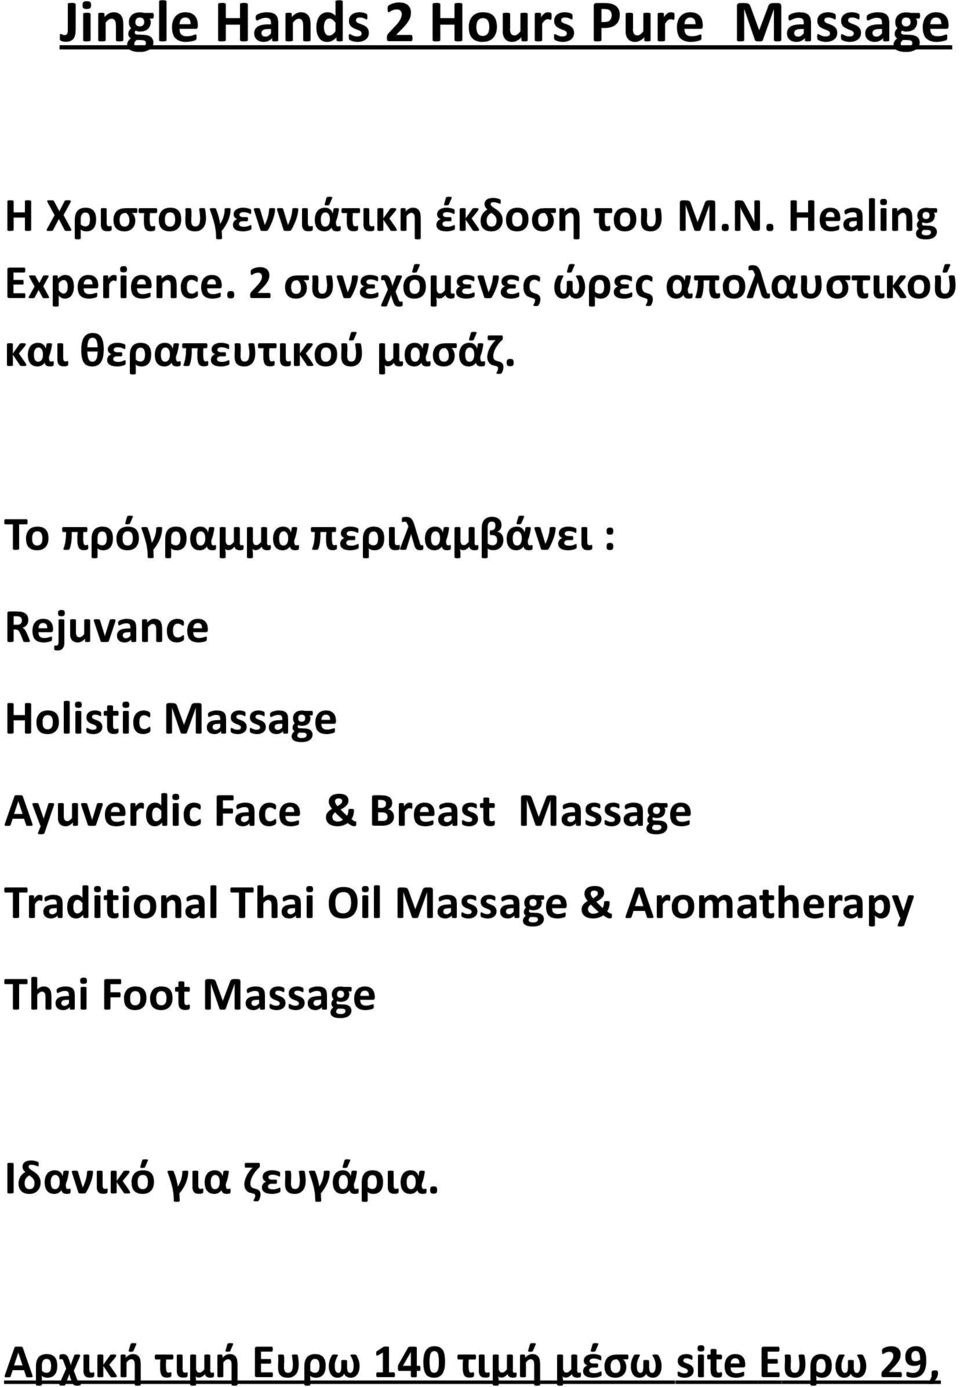 Το πρόγραμμα περιλαμβάνει : Rejuvance Holistic Massage Ayuverdic Face & Breast Massage